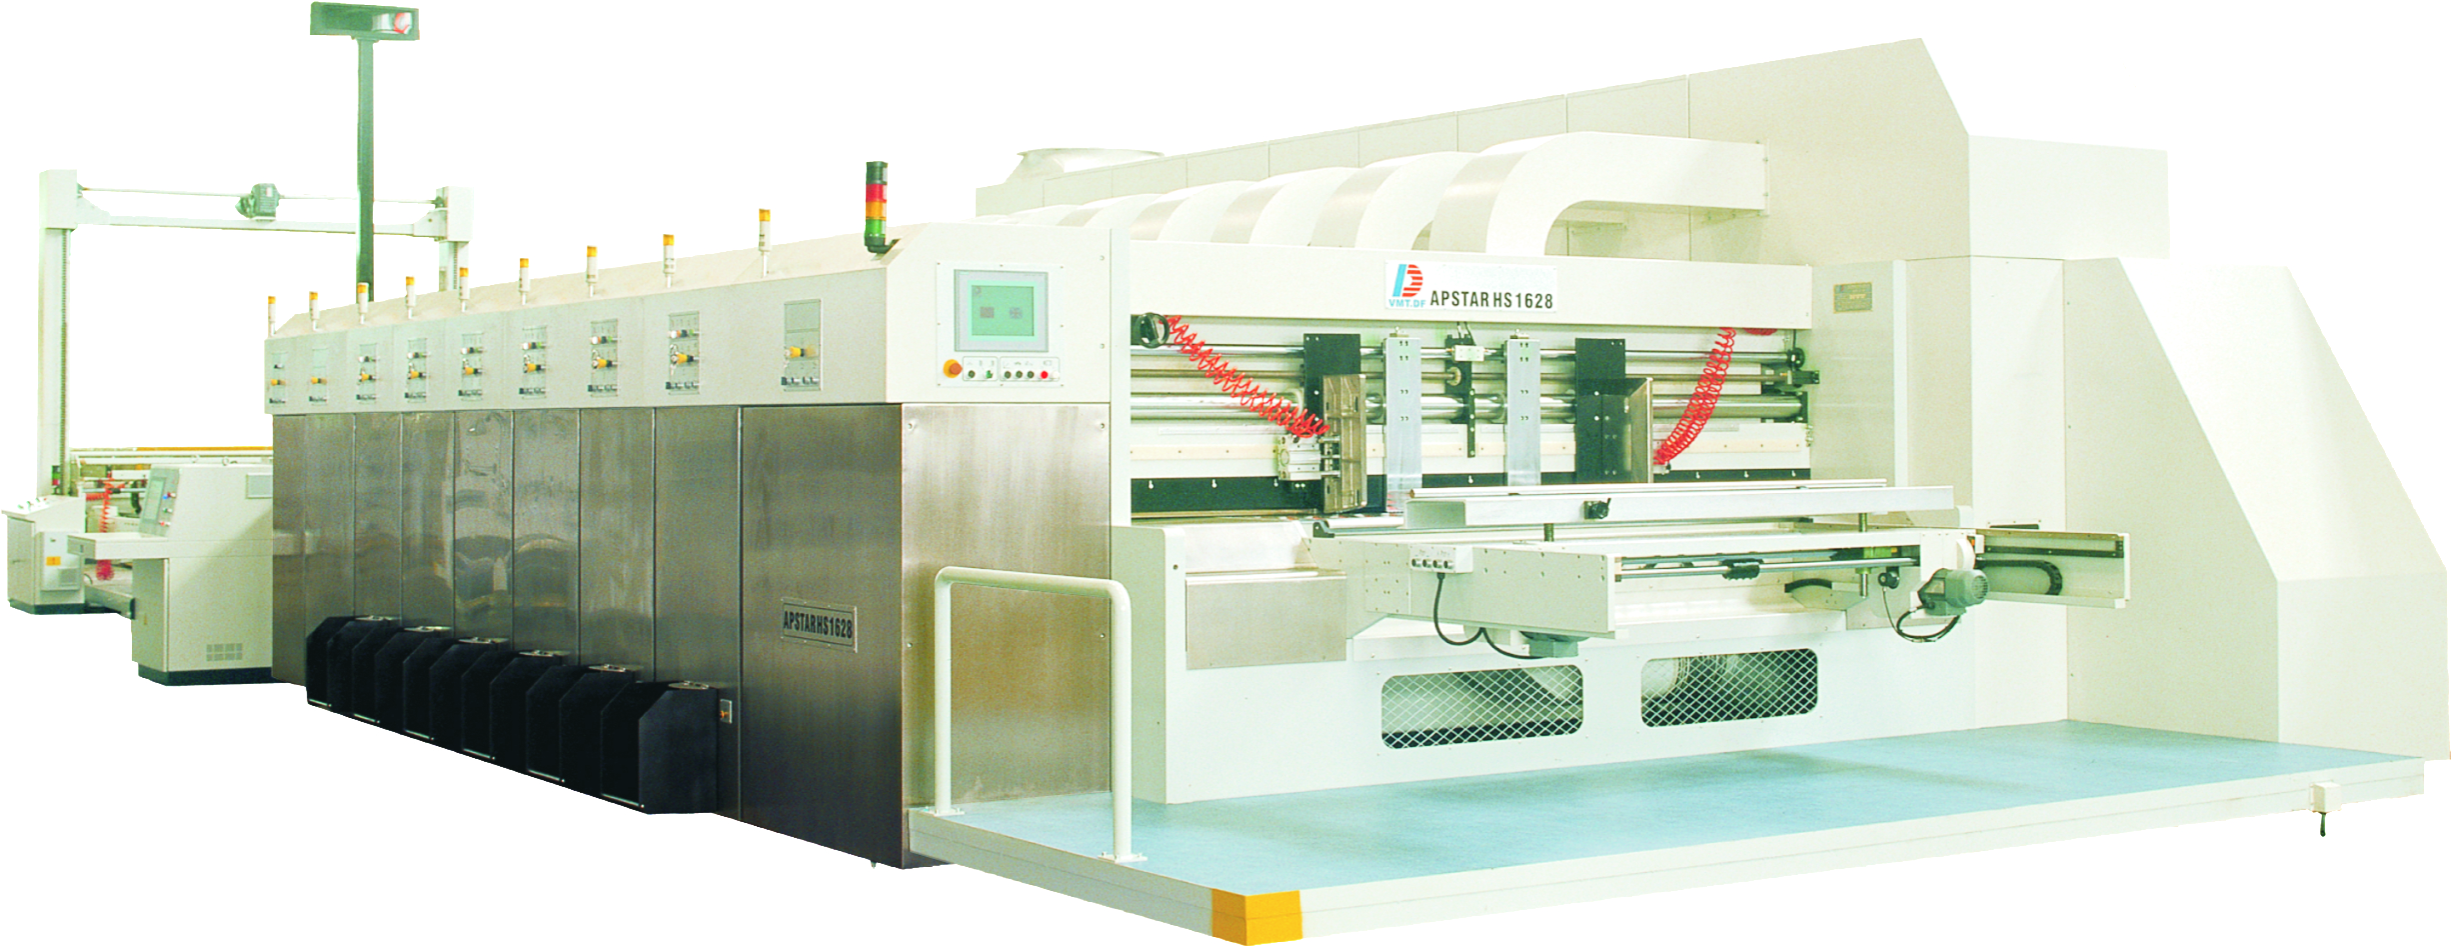 Dong Fang Apstar HS 1628 Flexo Printer Die Cutter